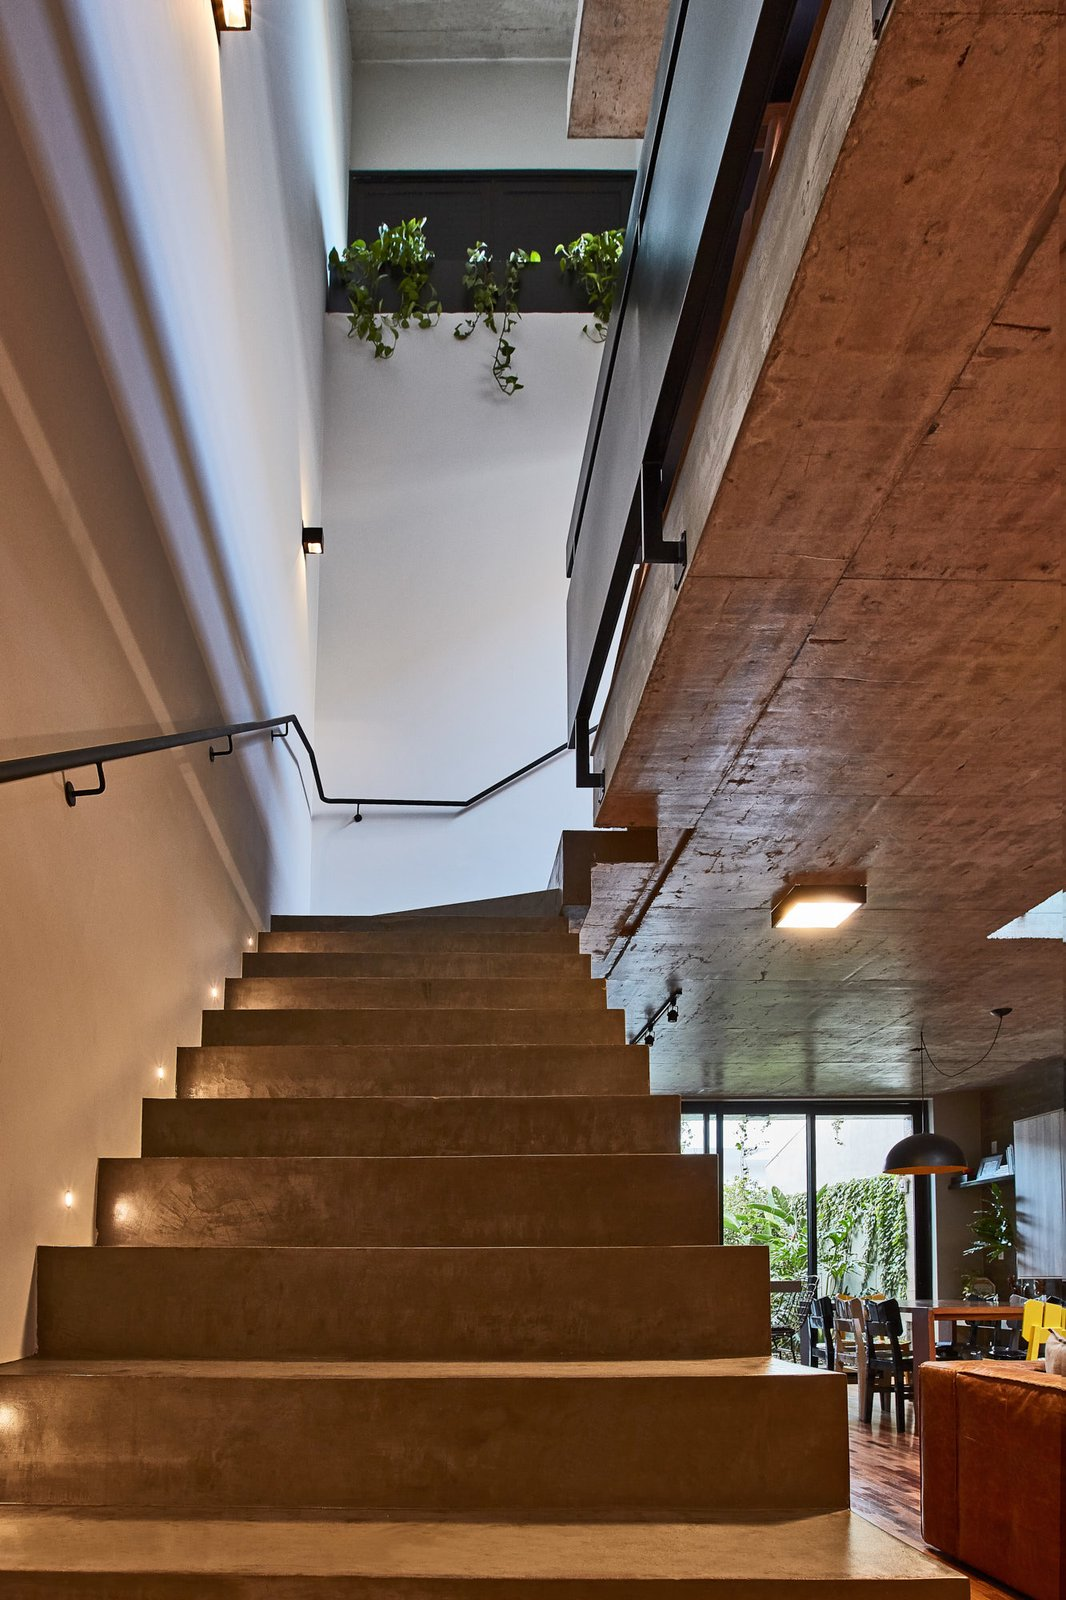 Staircase, Metal Railing, and Concrete Tread Concrete steps lead from the living room to the upper level.  Photo 8 of 14 in This Slender Concrete Home in Brazil Feels Like an Urban Jungle